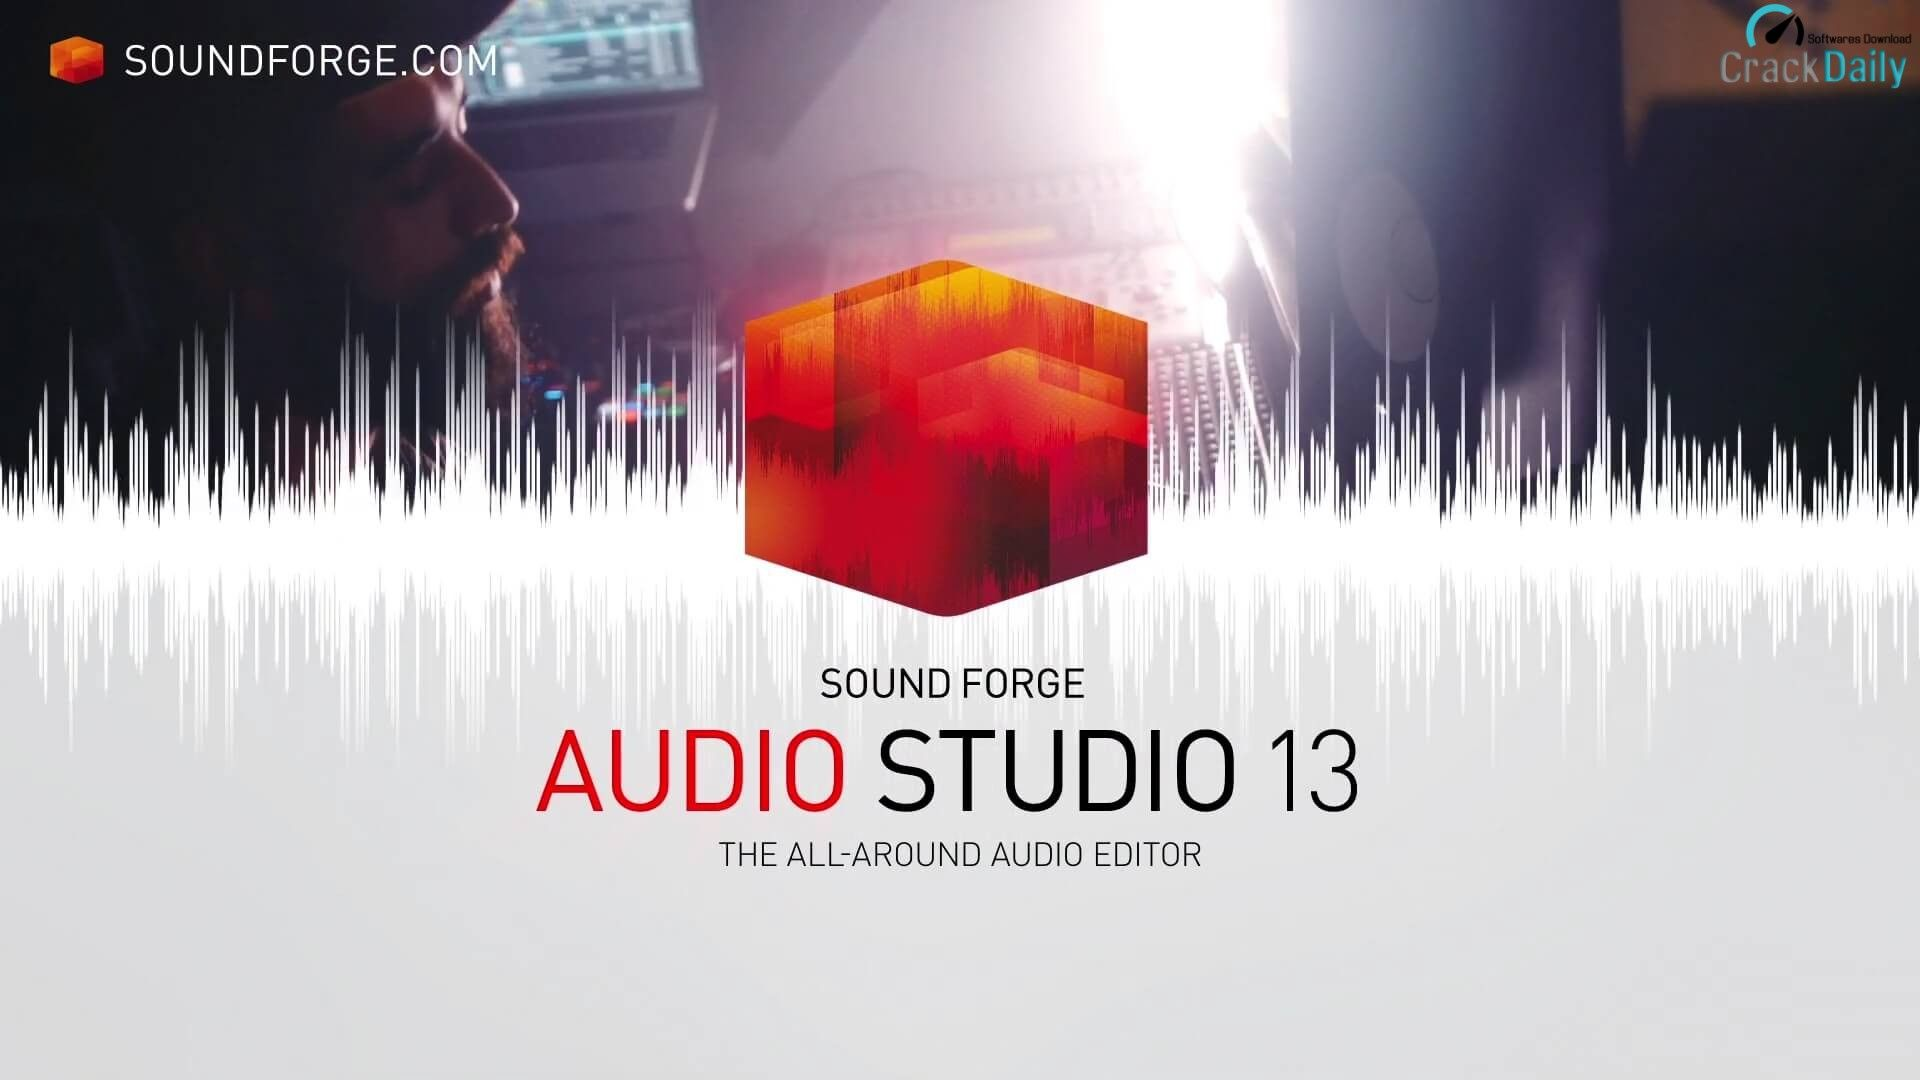 Sound forge download free for mac windows 10